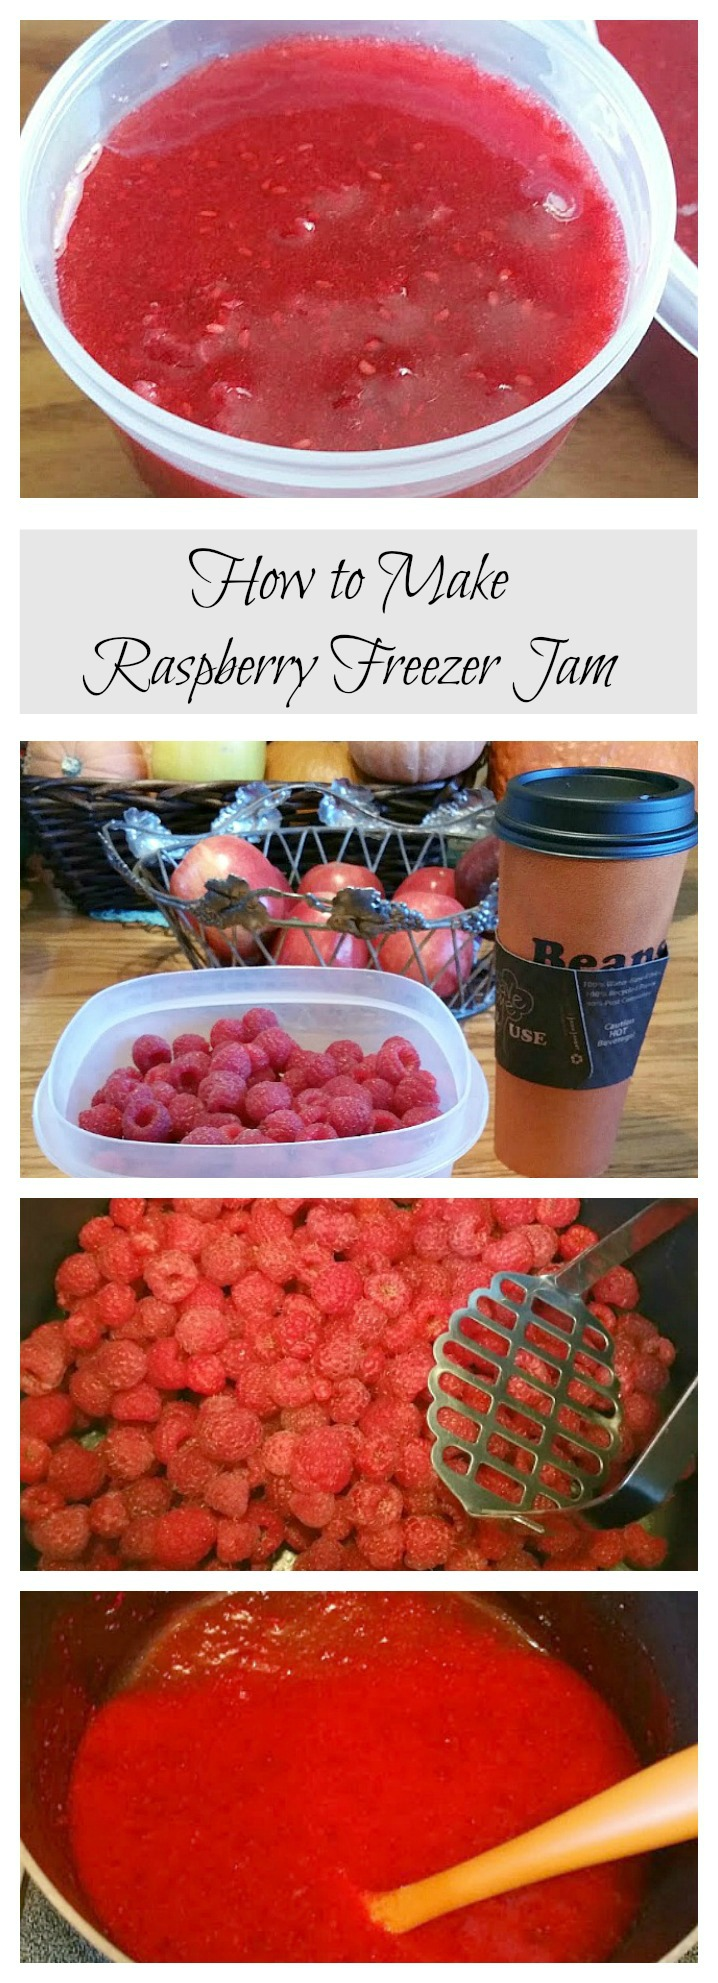 make raspberry freezer jam